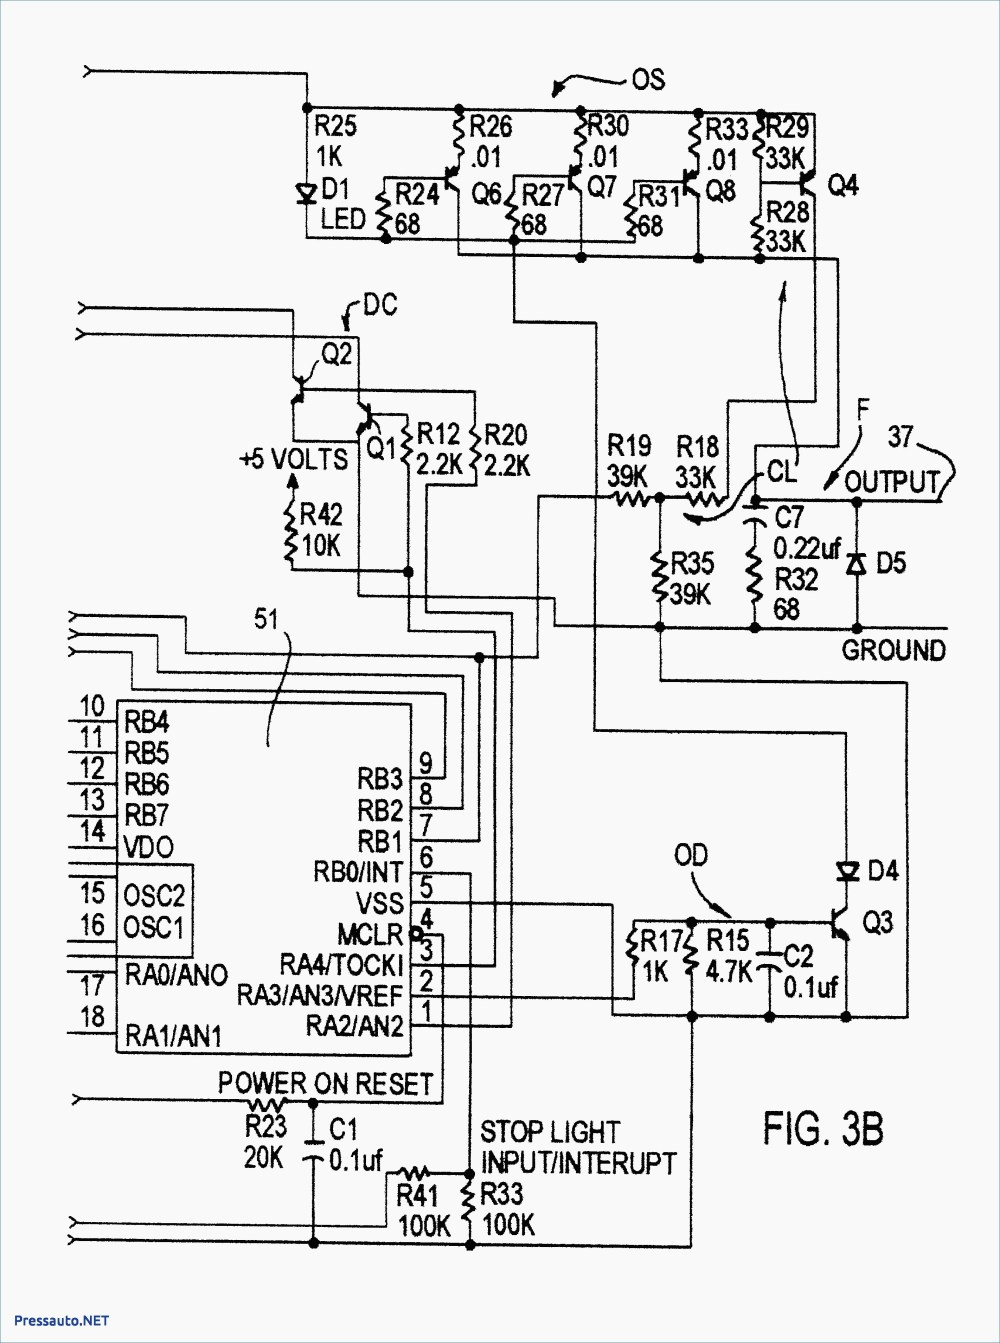 medium resolution of 2003 chevy trailblazer parts diagram chevy blazer parts catalog pics 2003 chevy trailblazer oil level sensor 2003 chevy trailblazer parts diagram